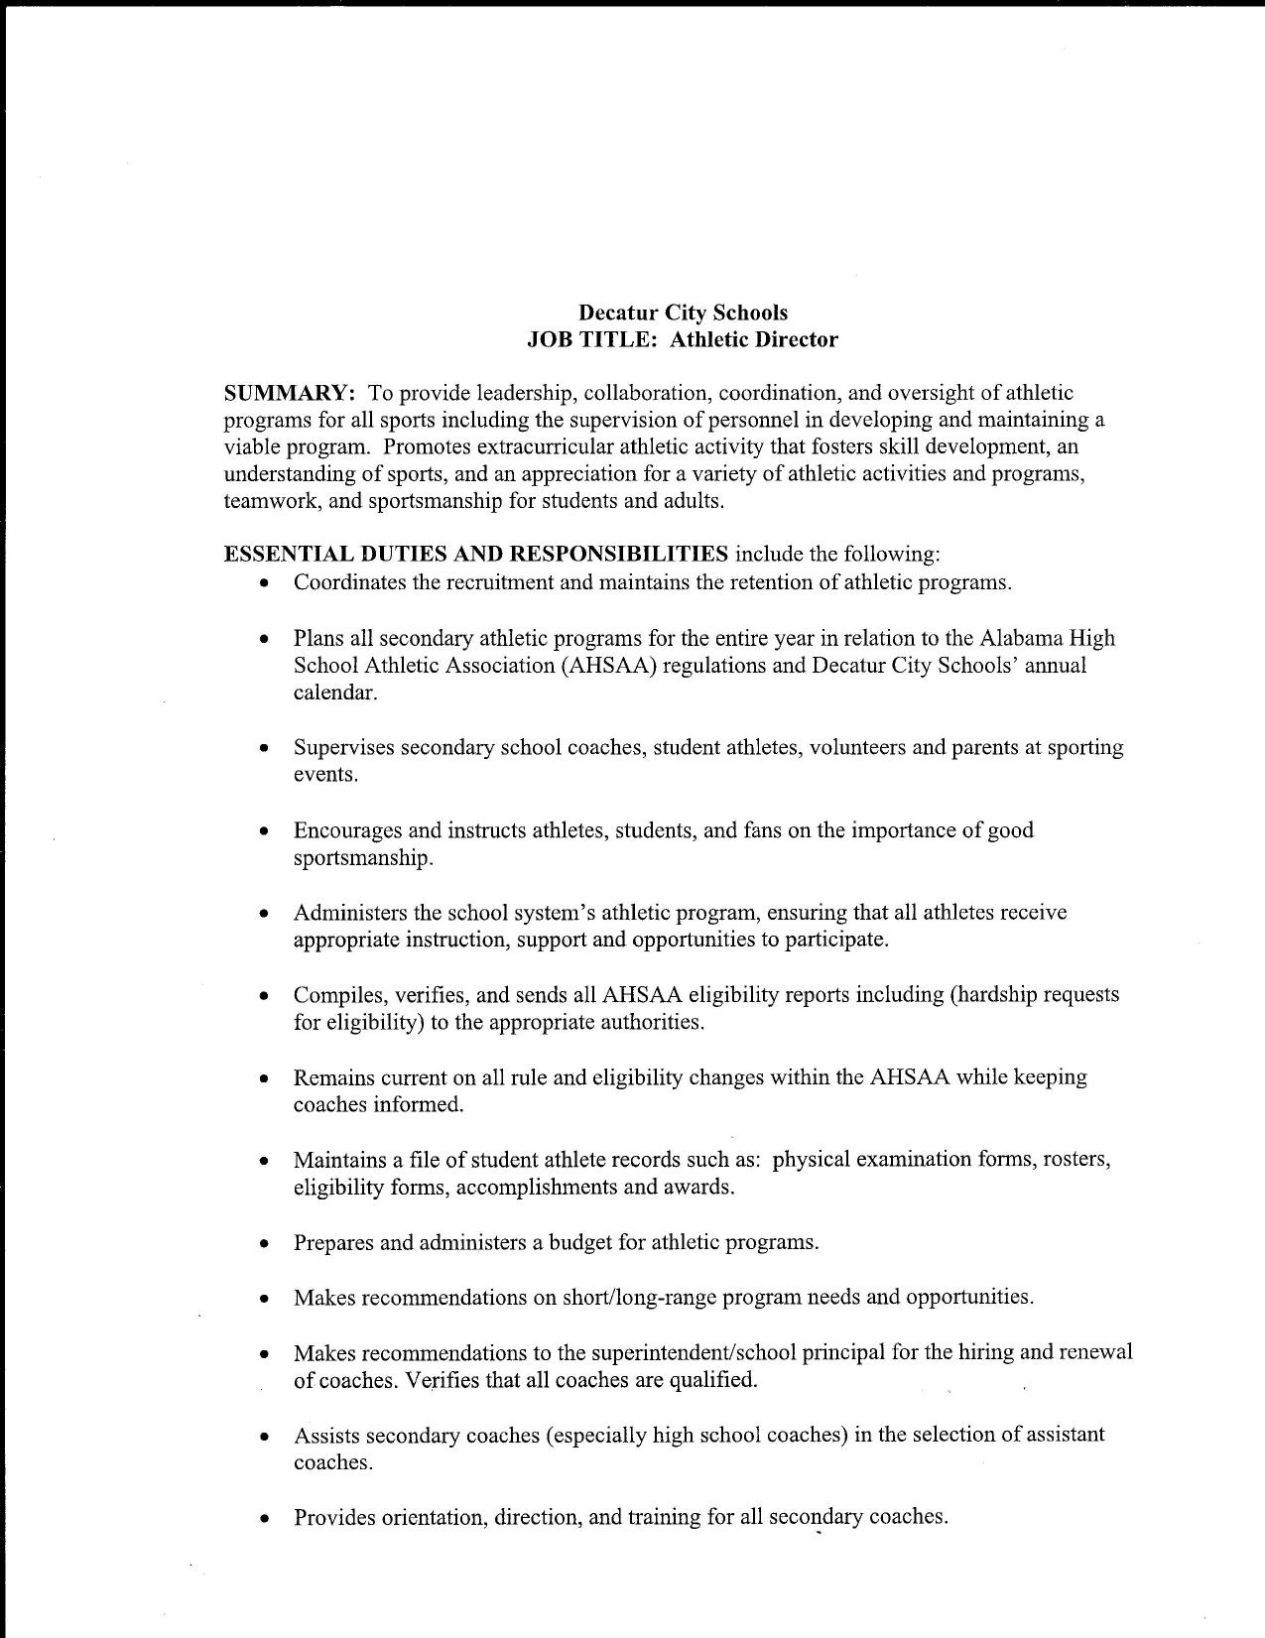 Decatur City Schools Athletic Director Job Description